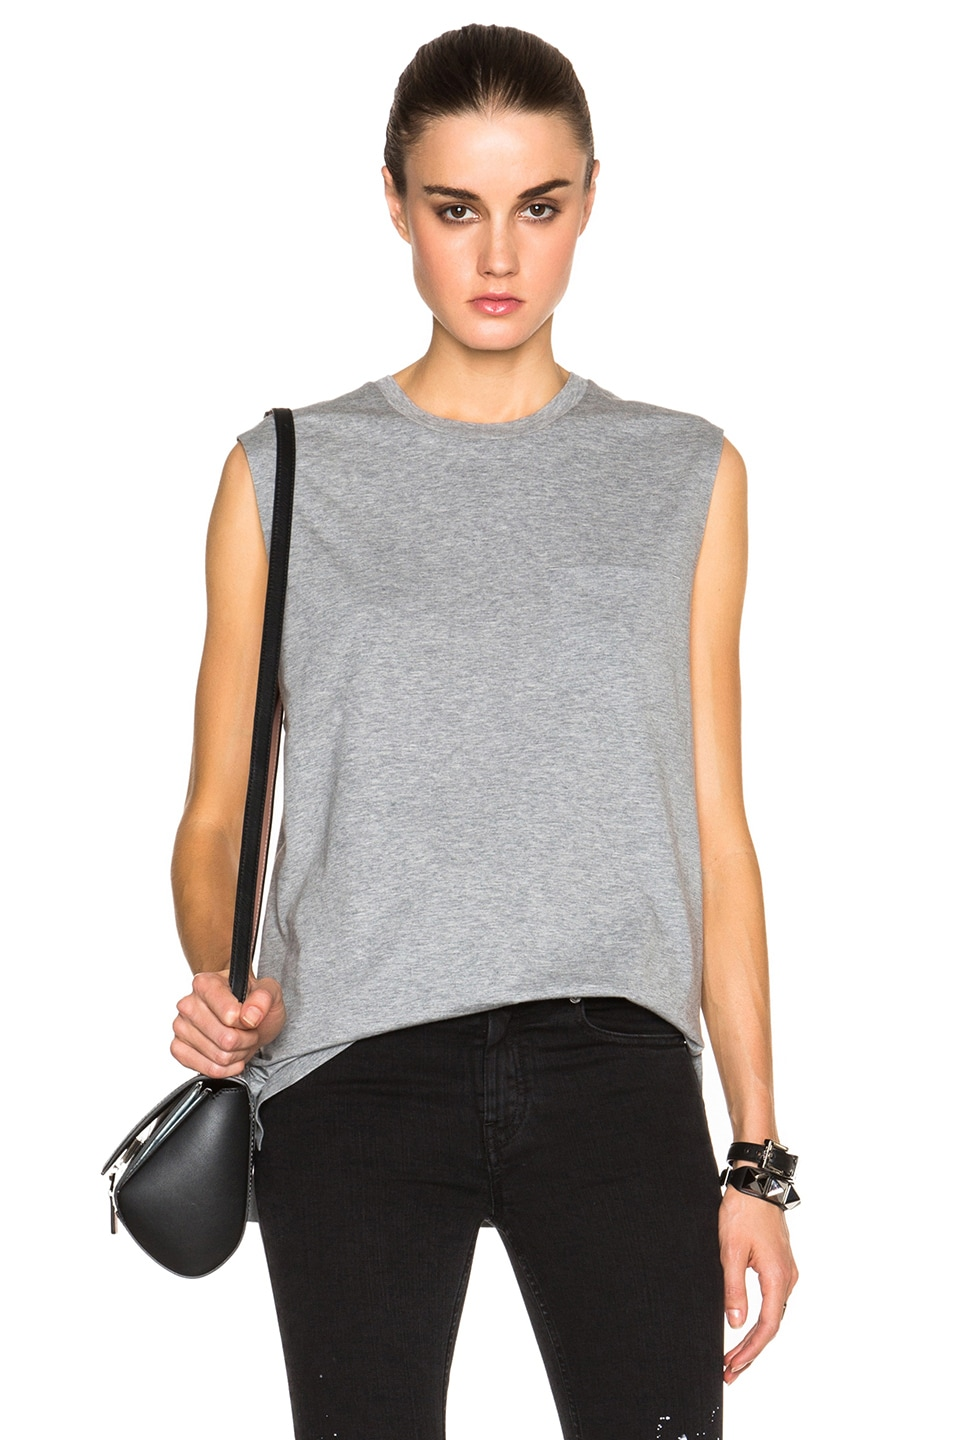 bd6c626f85c82a Image 1 of T by Alexander Wang Welded Cotton Jersey Pocket Muscle Tee in  Heather Grey